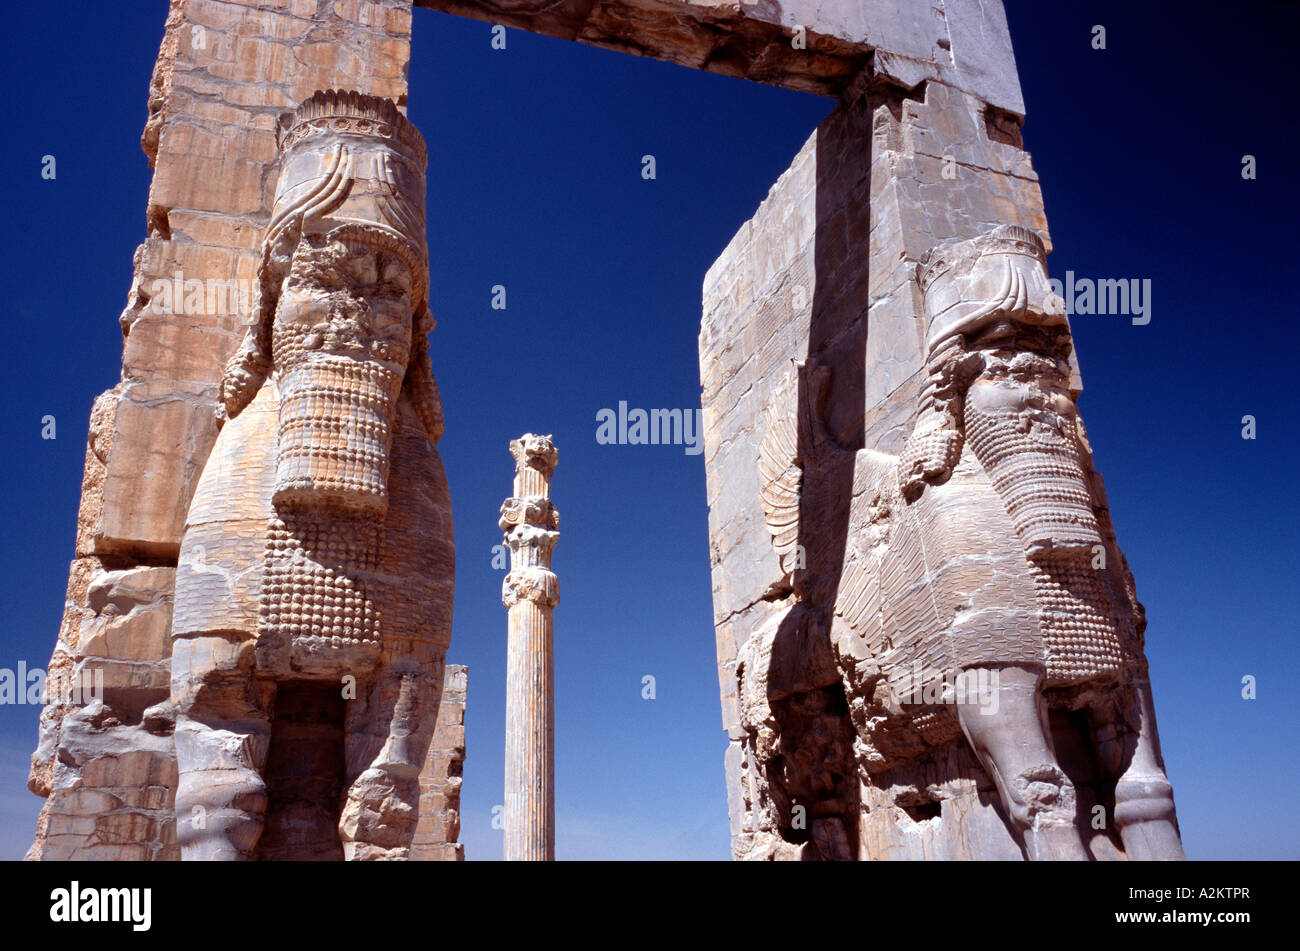 April 14, 2006 - The Gate of All Nations, entrance to the ancient city of Persepolis (Takt-e- Jamshid) outside Iranian - Stock Image